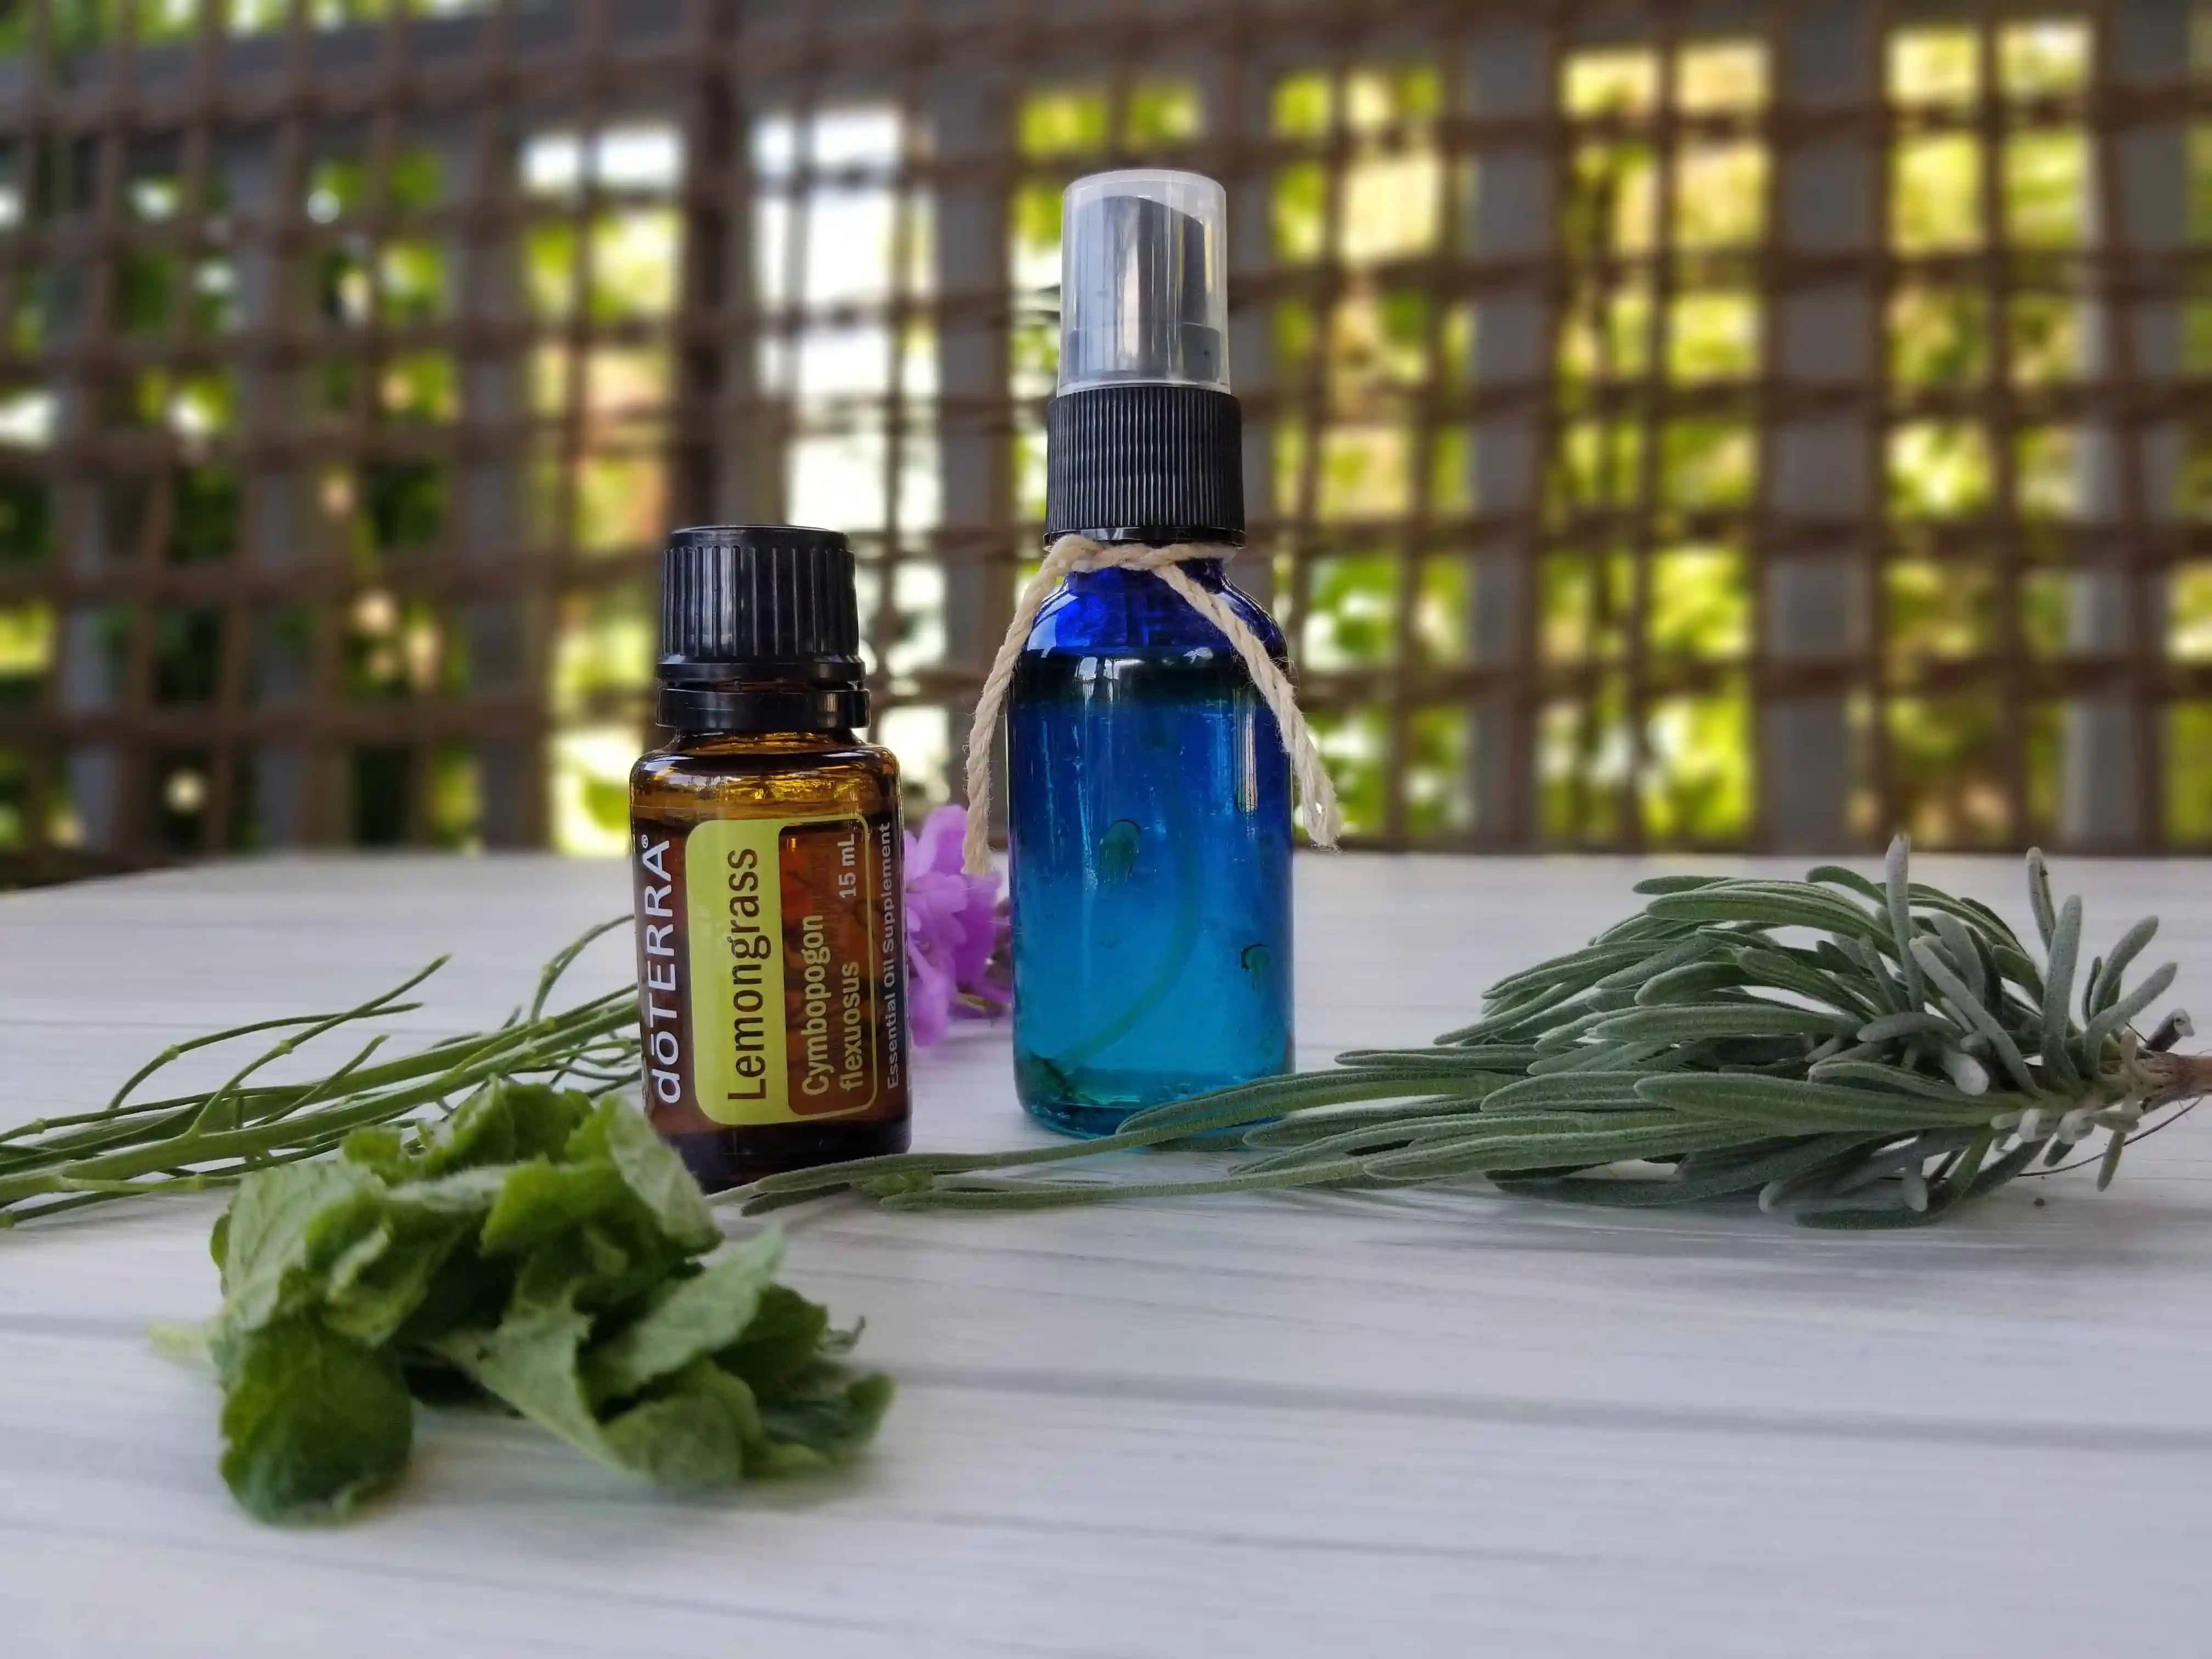 blue spray bottle with essential oil mosquito repellent, lemongrass essential oil bottle and greenery